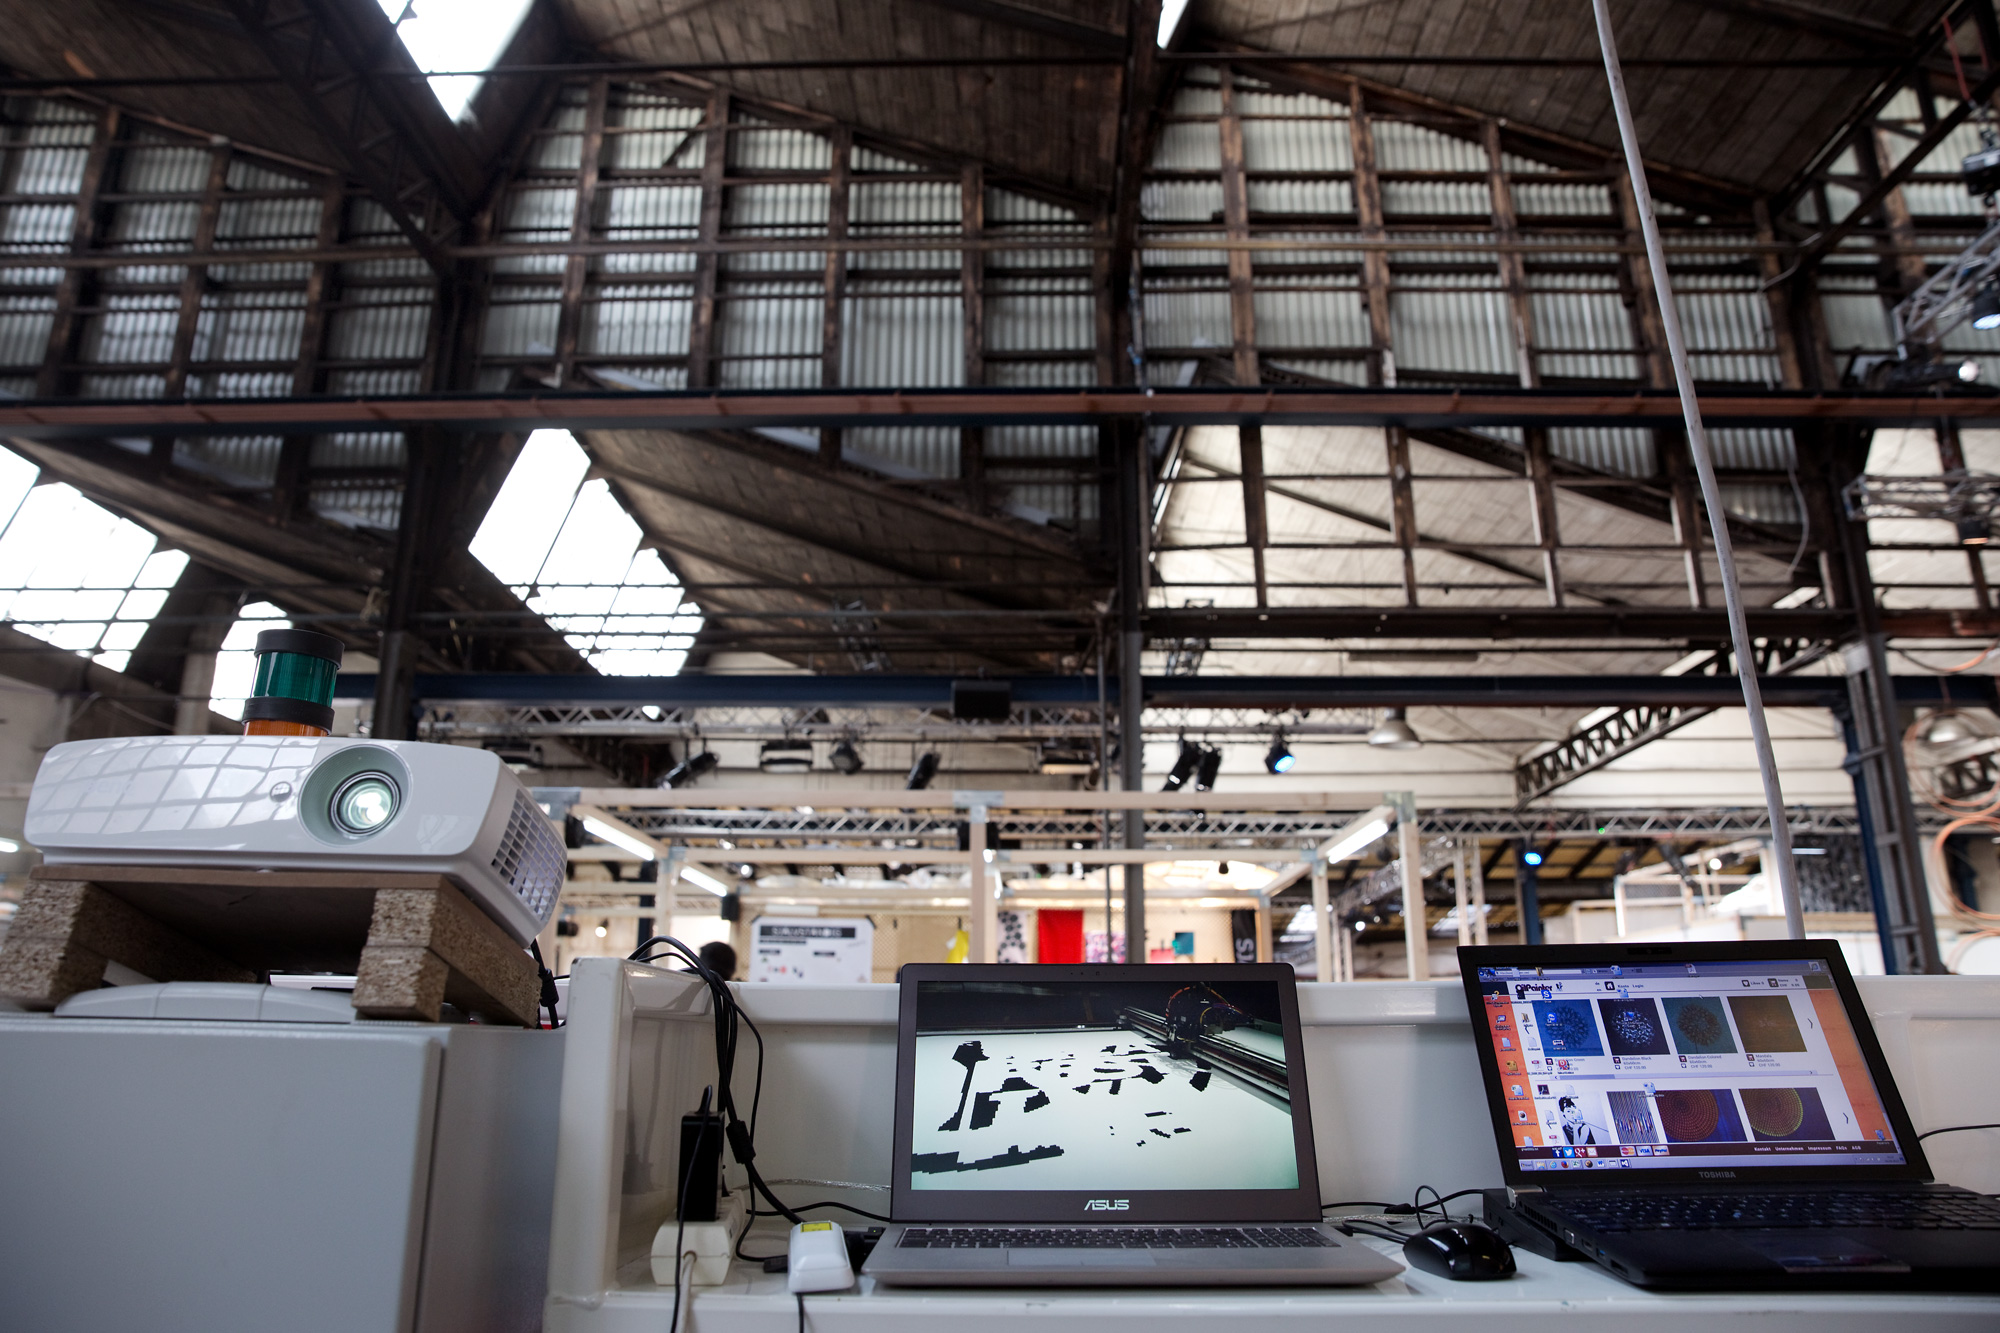 Two laptops and a projector on a table underneath a high ceiling in an industrial hall.